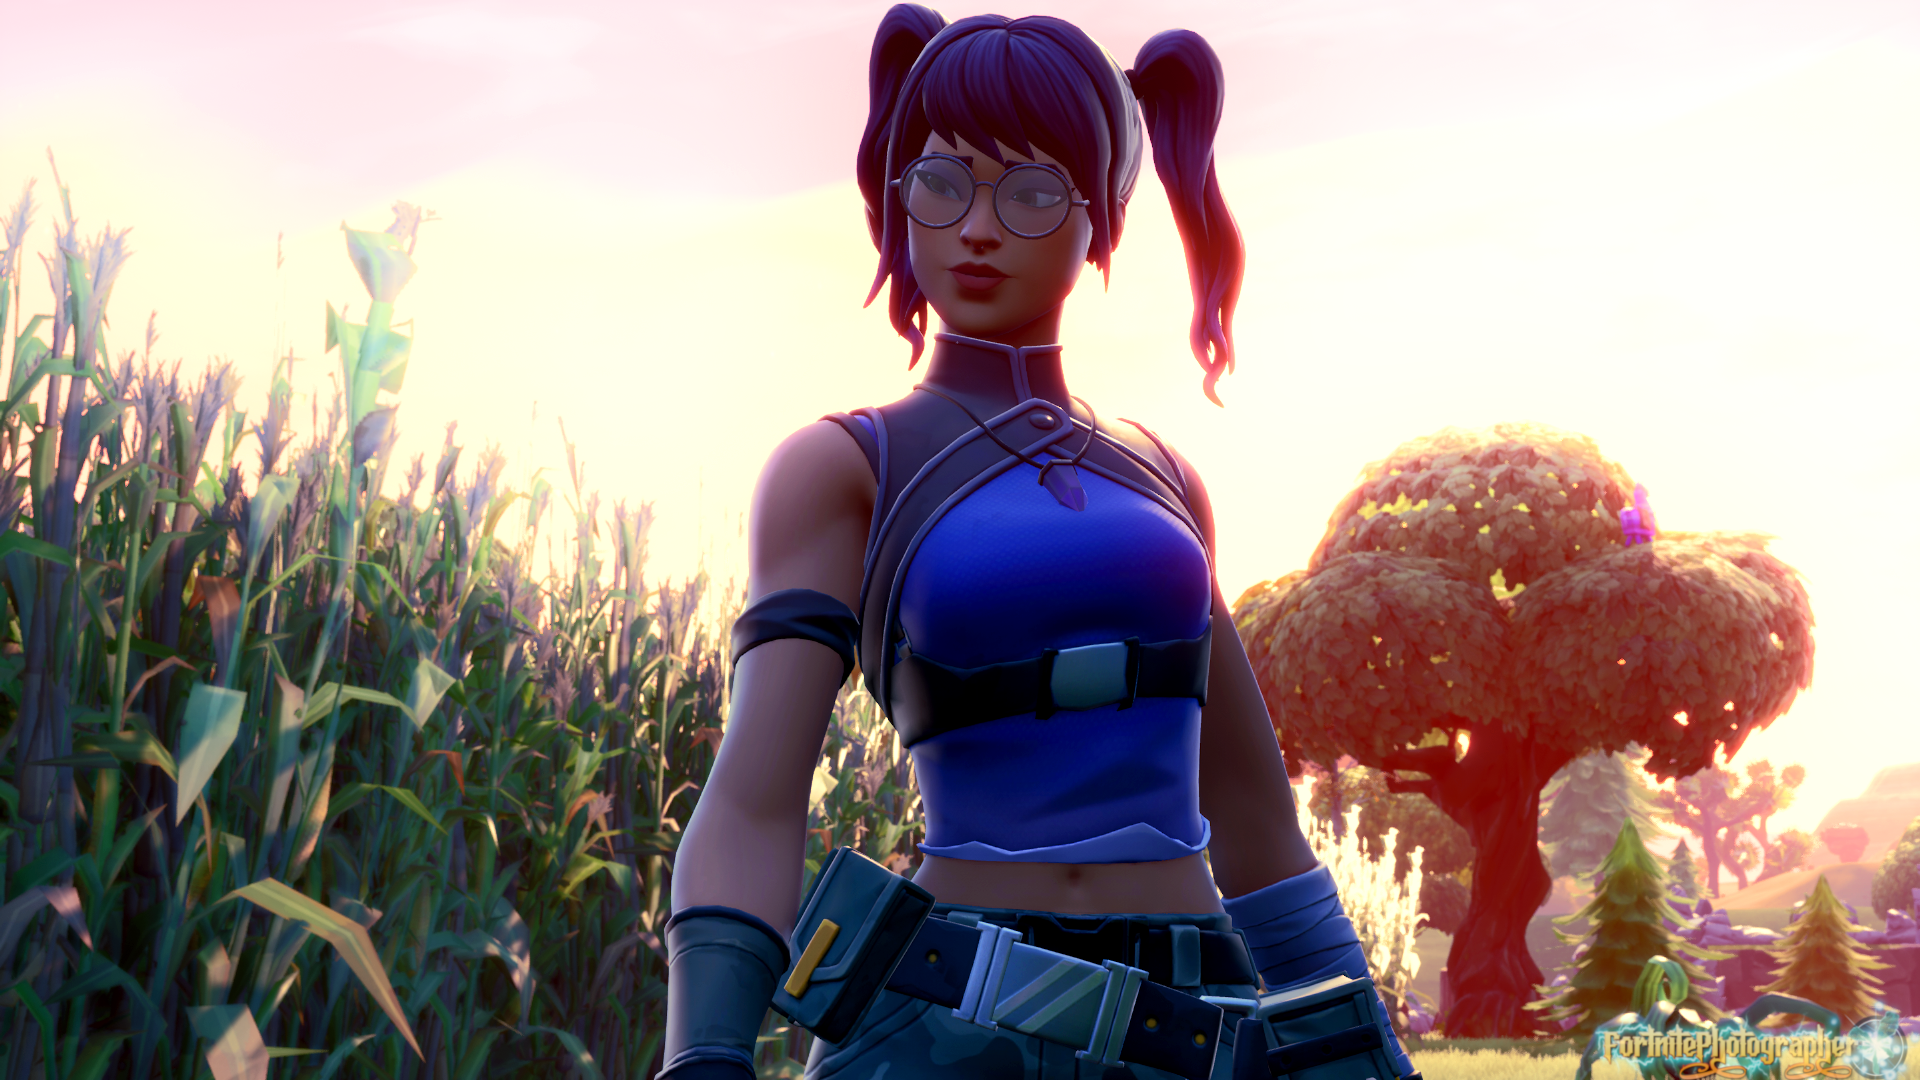 Peaceful Times More Crystal Shots Happy Birthday Fortnitetbg On Twitter You Legend Hope You Have A Won Skin Images Best Gaming Wallpapers Gamer Pics